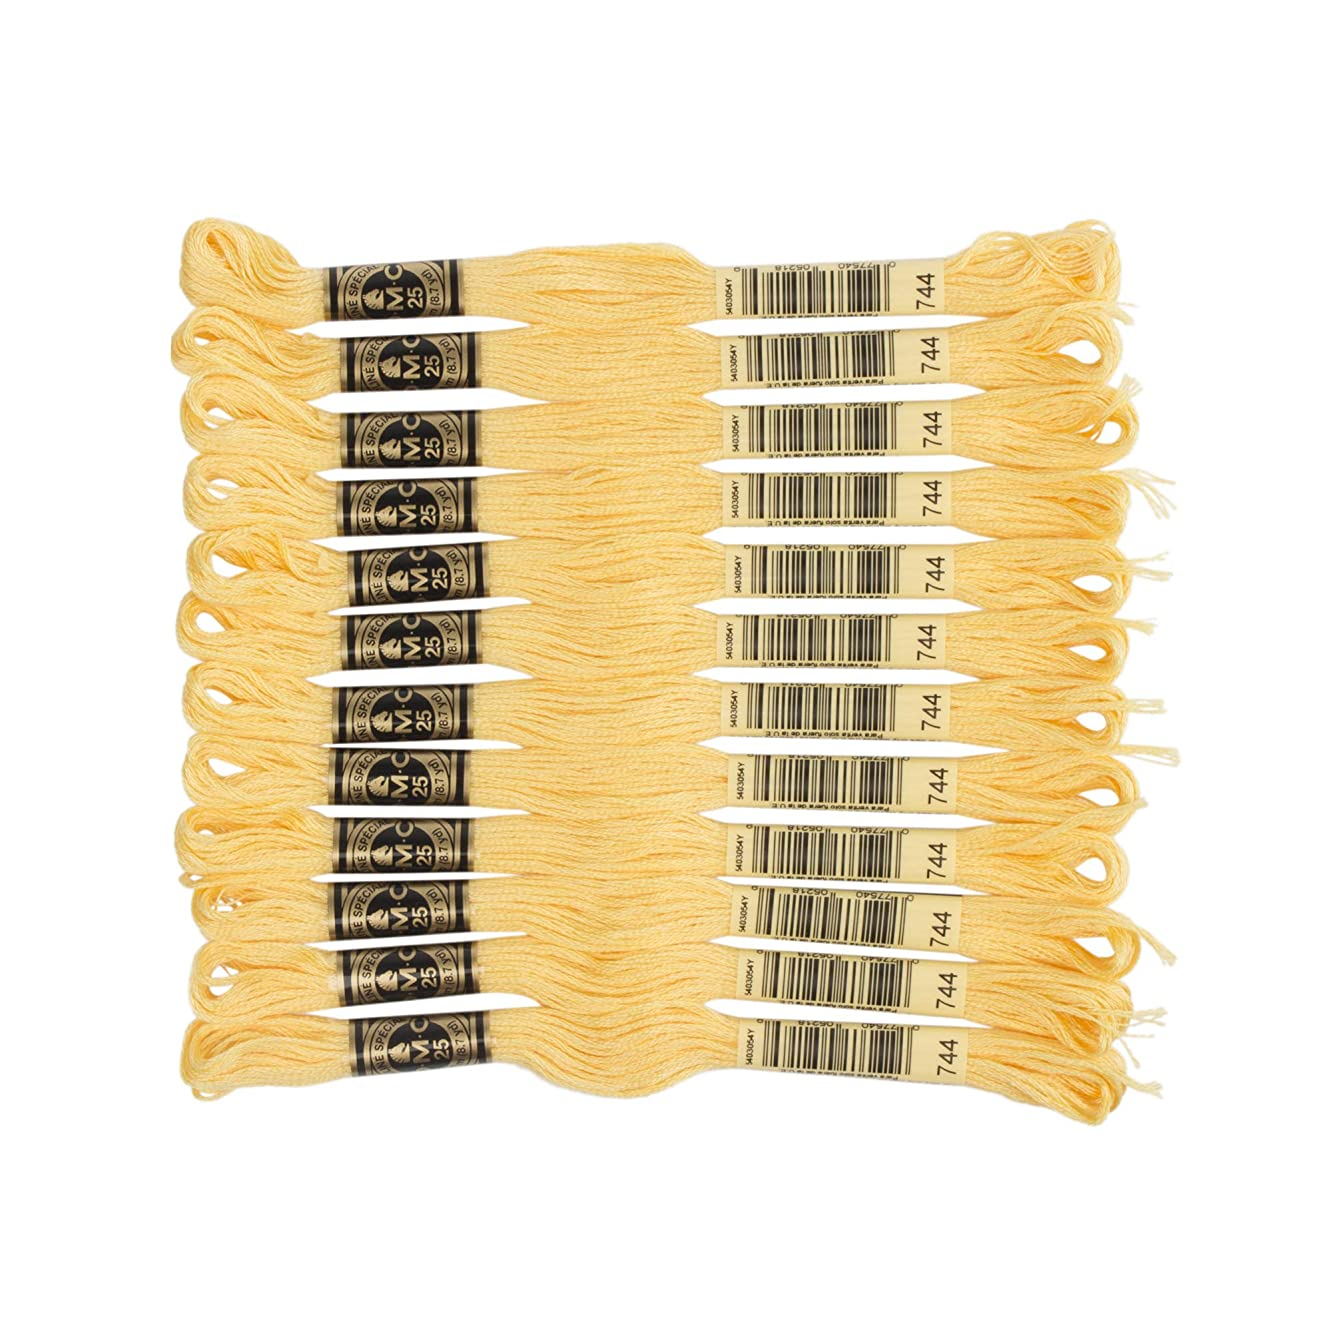 DMC 6-Strand Embroidery Cotton Floss, Pale Yellow ,Pack of 12